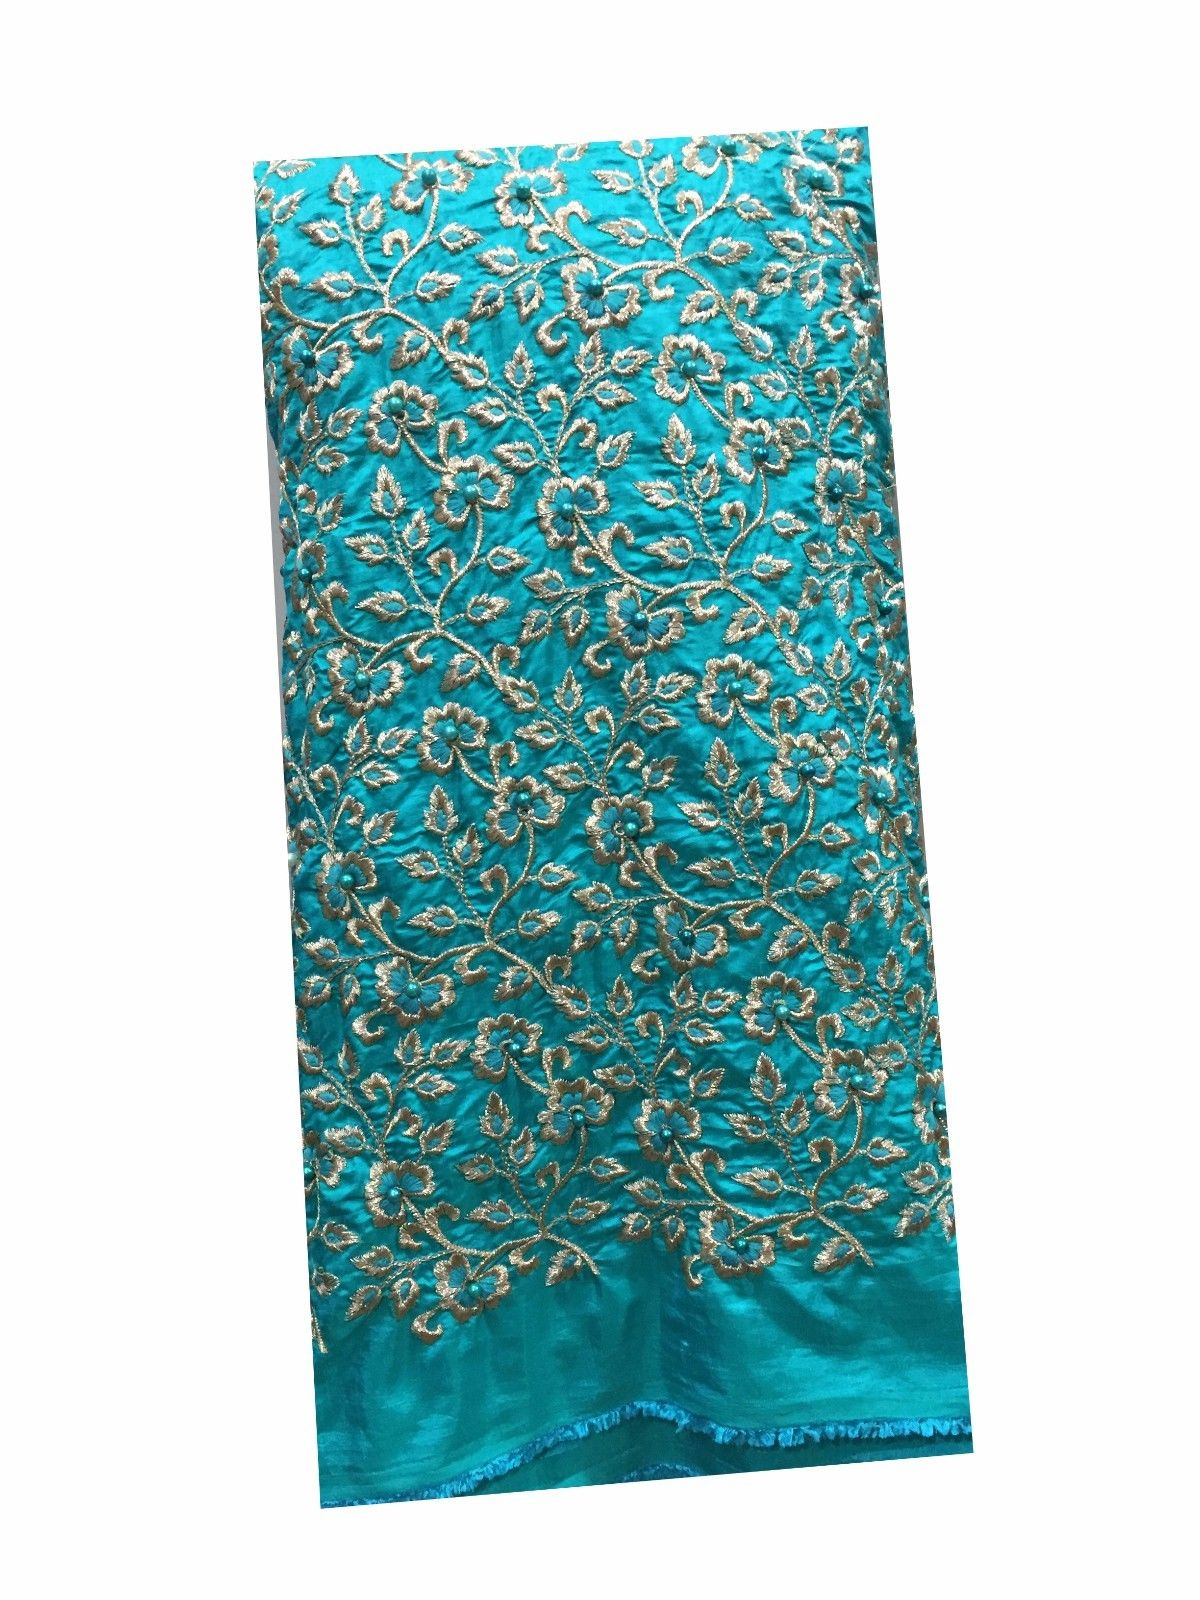 kutch embroidery blouse material online fabric wholesale online india Embroidered Paper Silk Torquoise Blue 42 inches Wide 8046